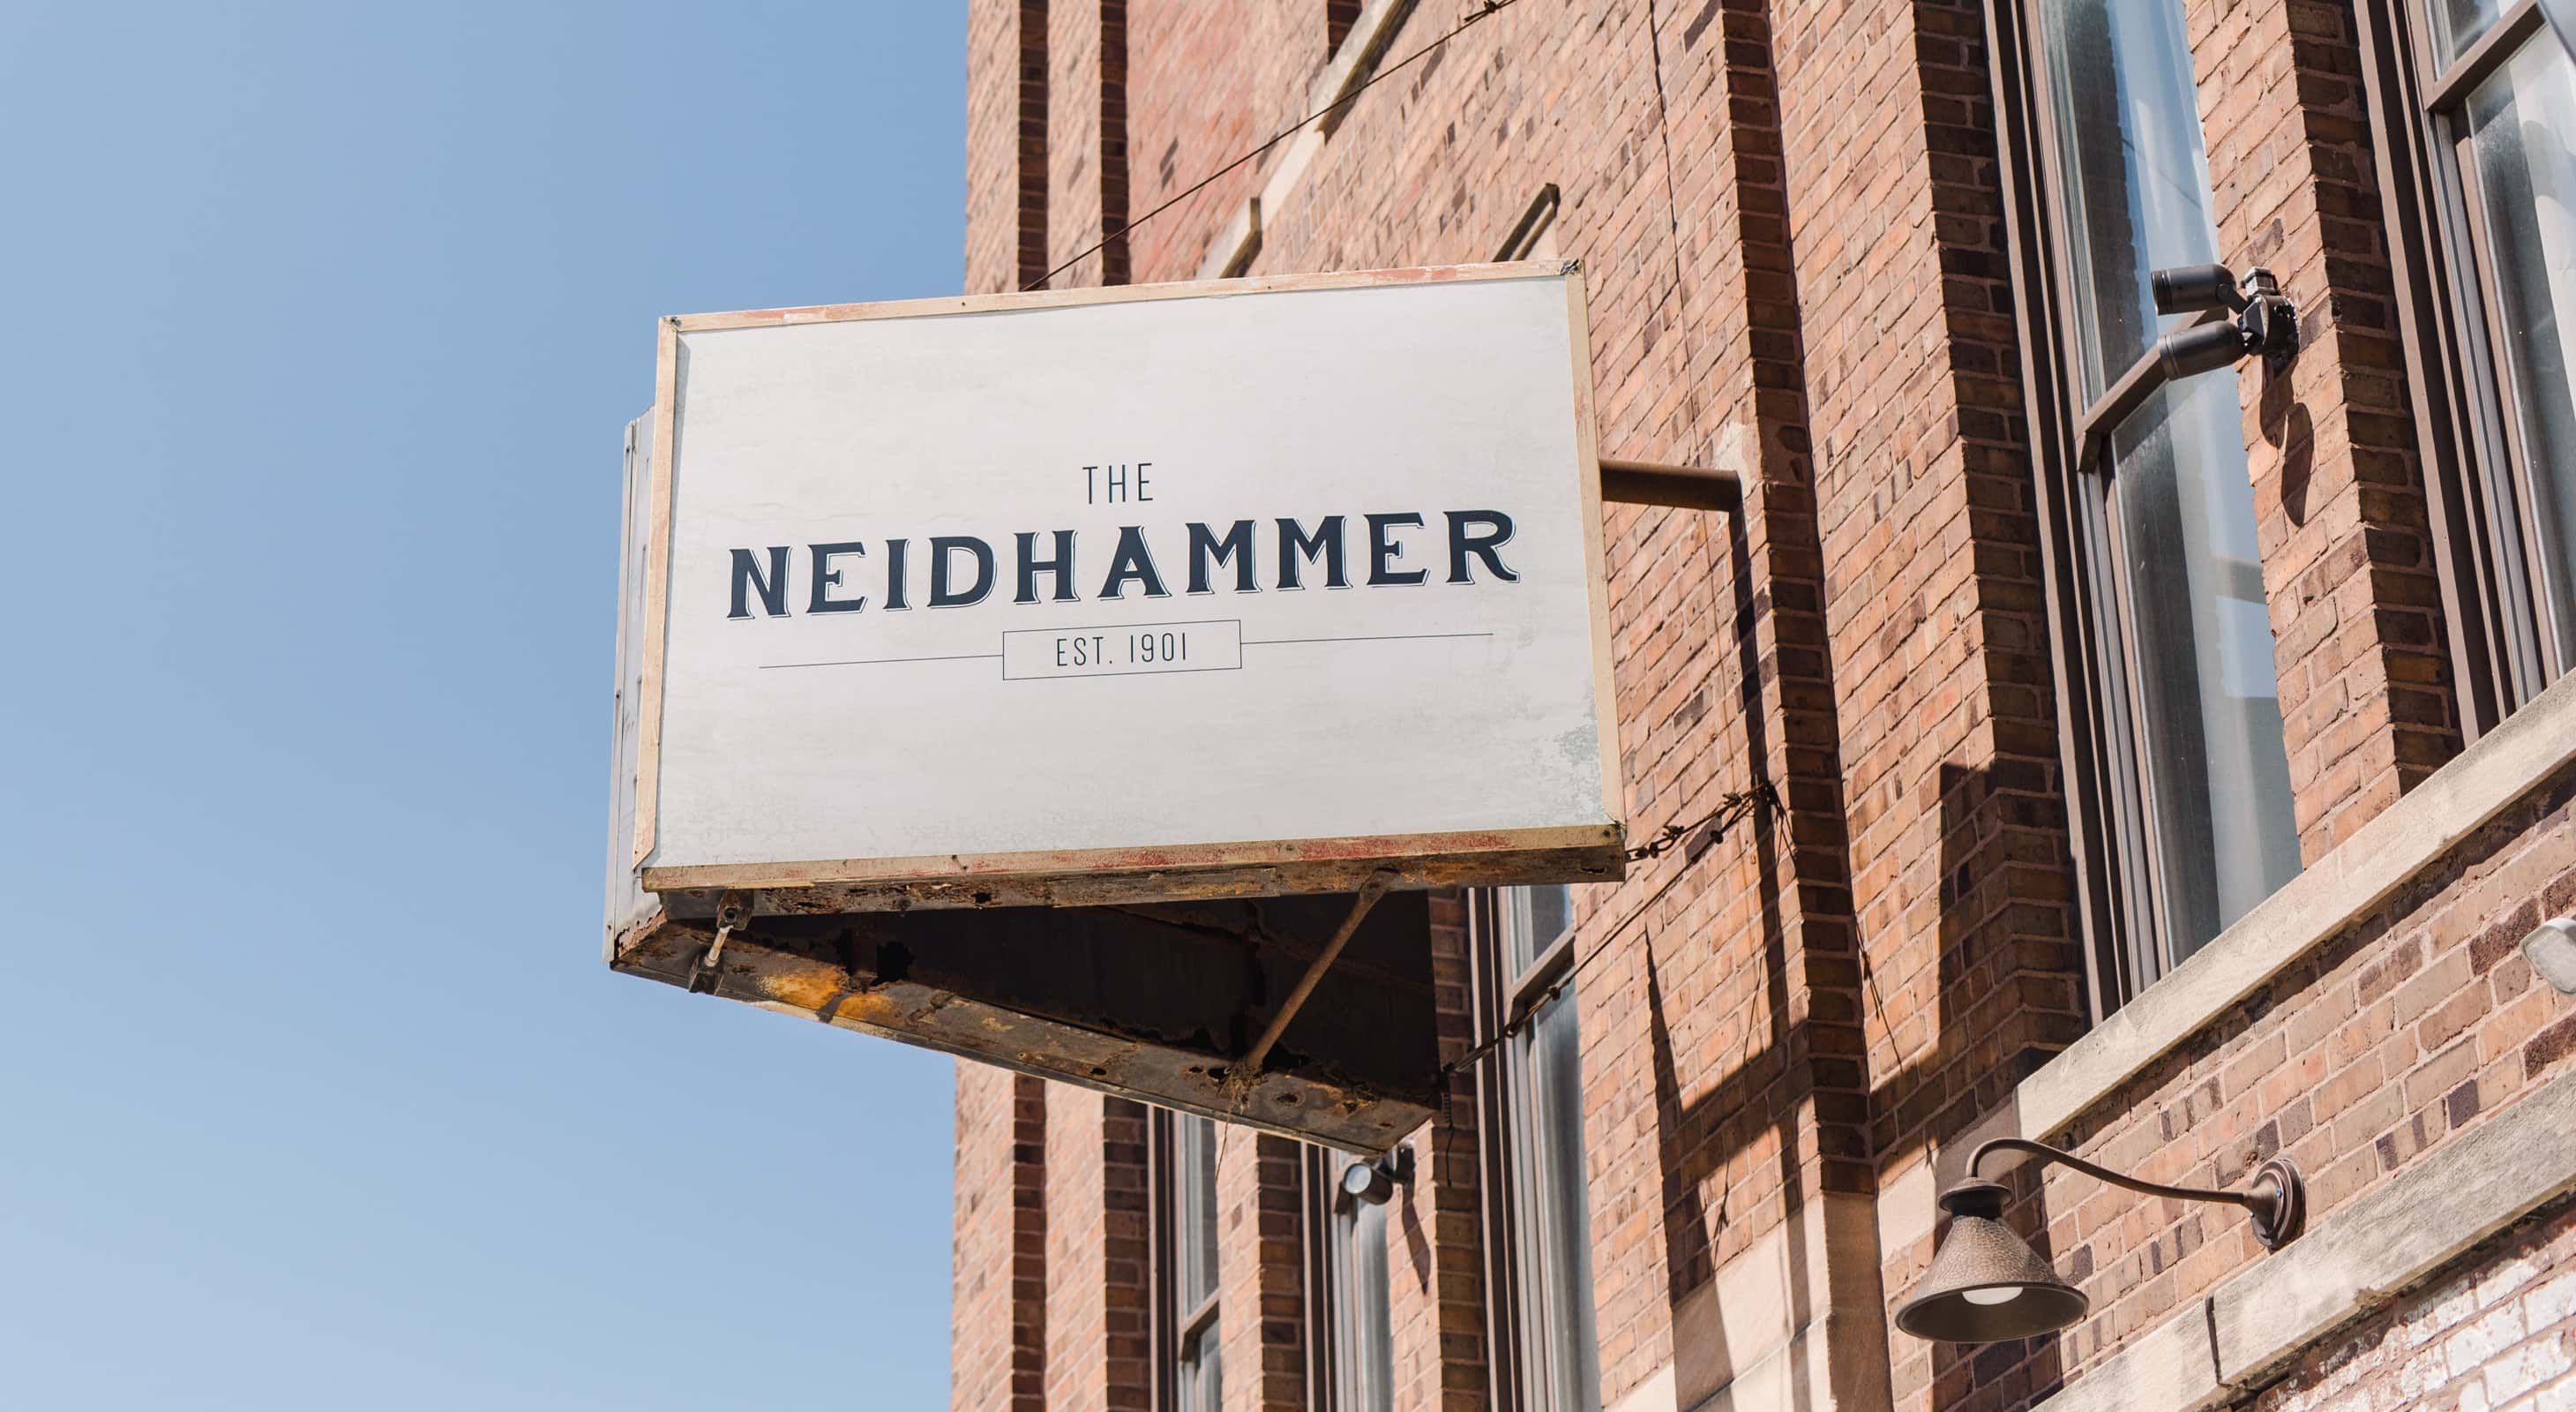 The Neidhammer, an Indianapolis Wedding and Event Venue